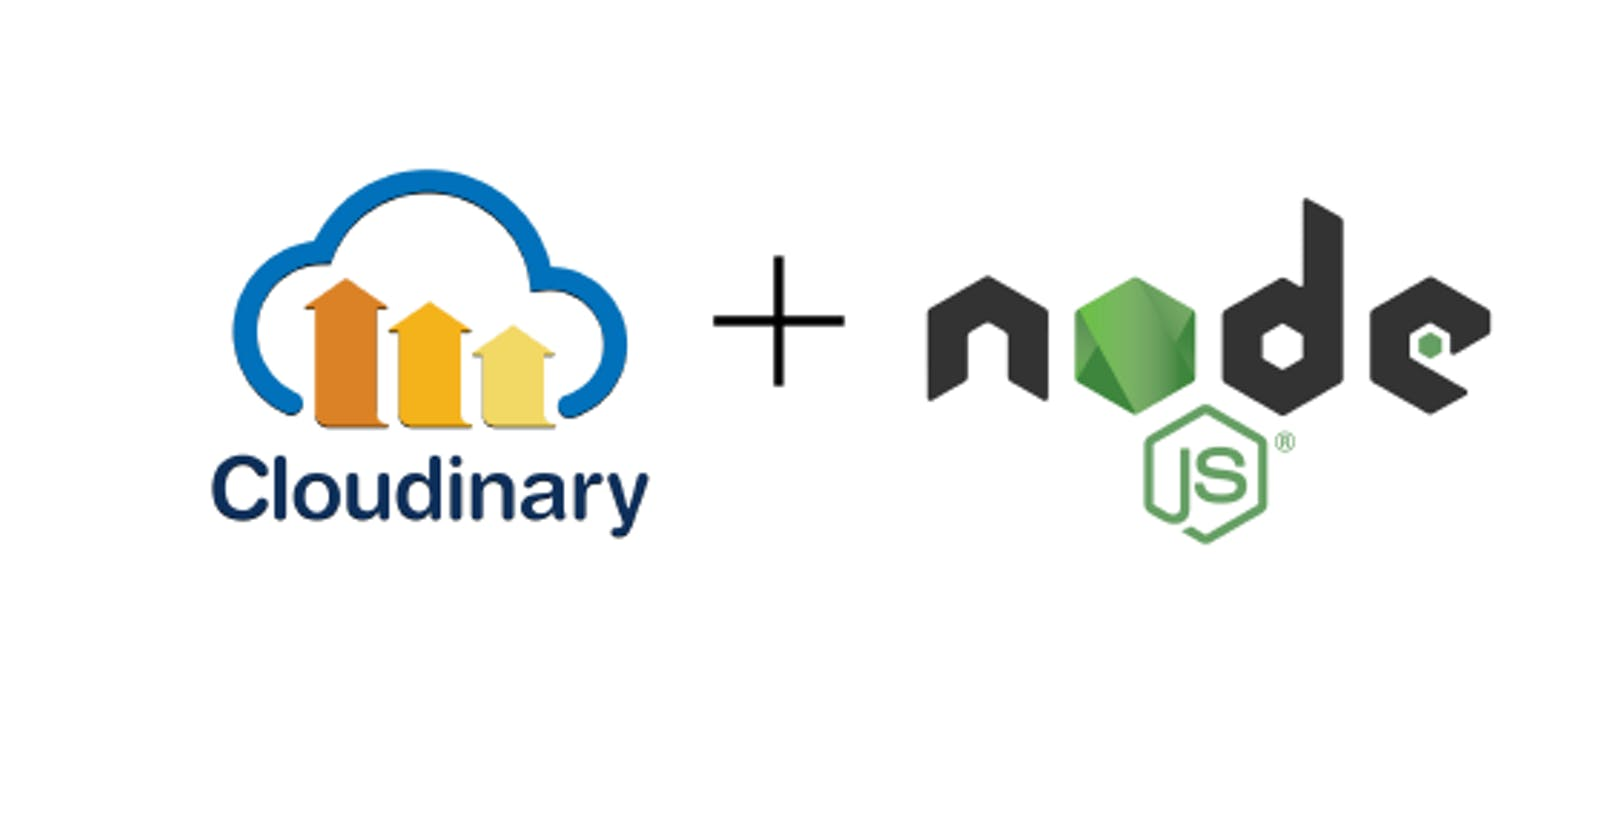 Uploading images in your Node.js app using Express and Cloudinary